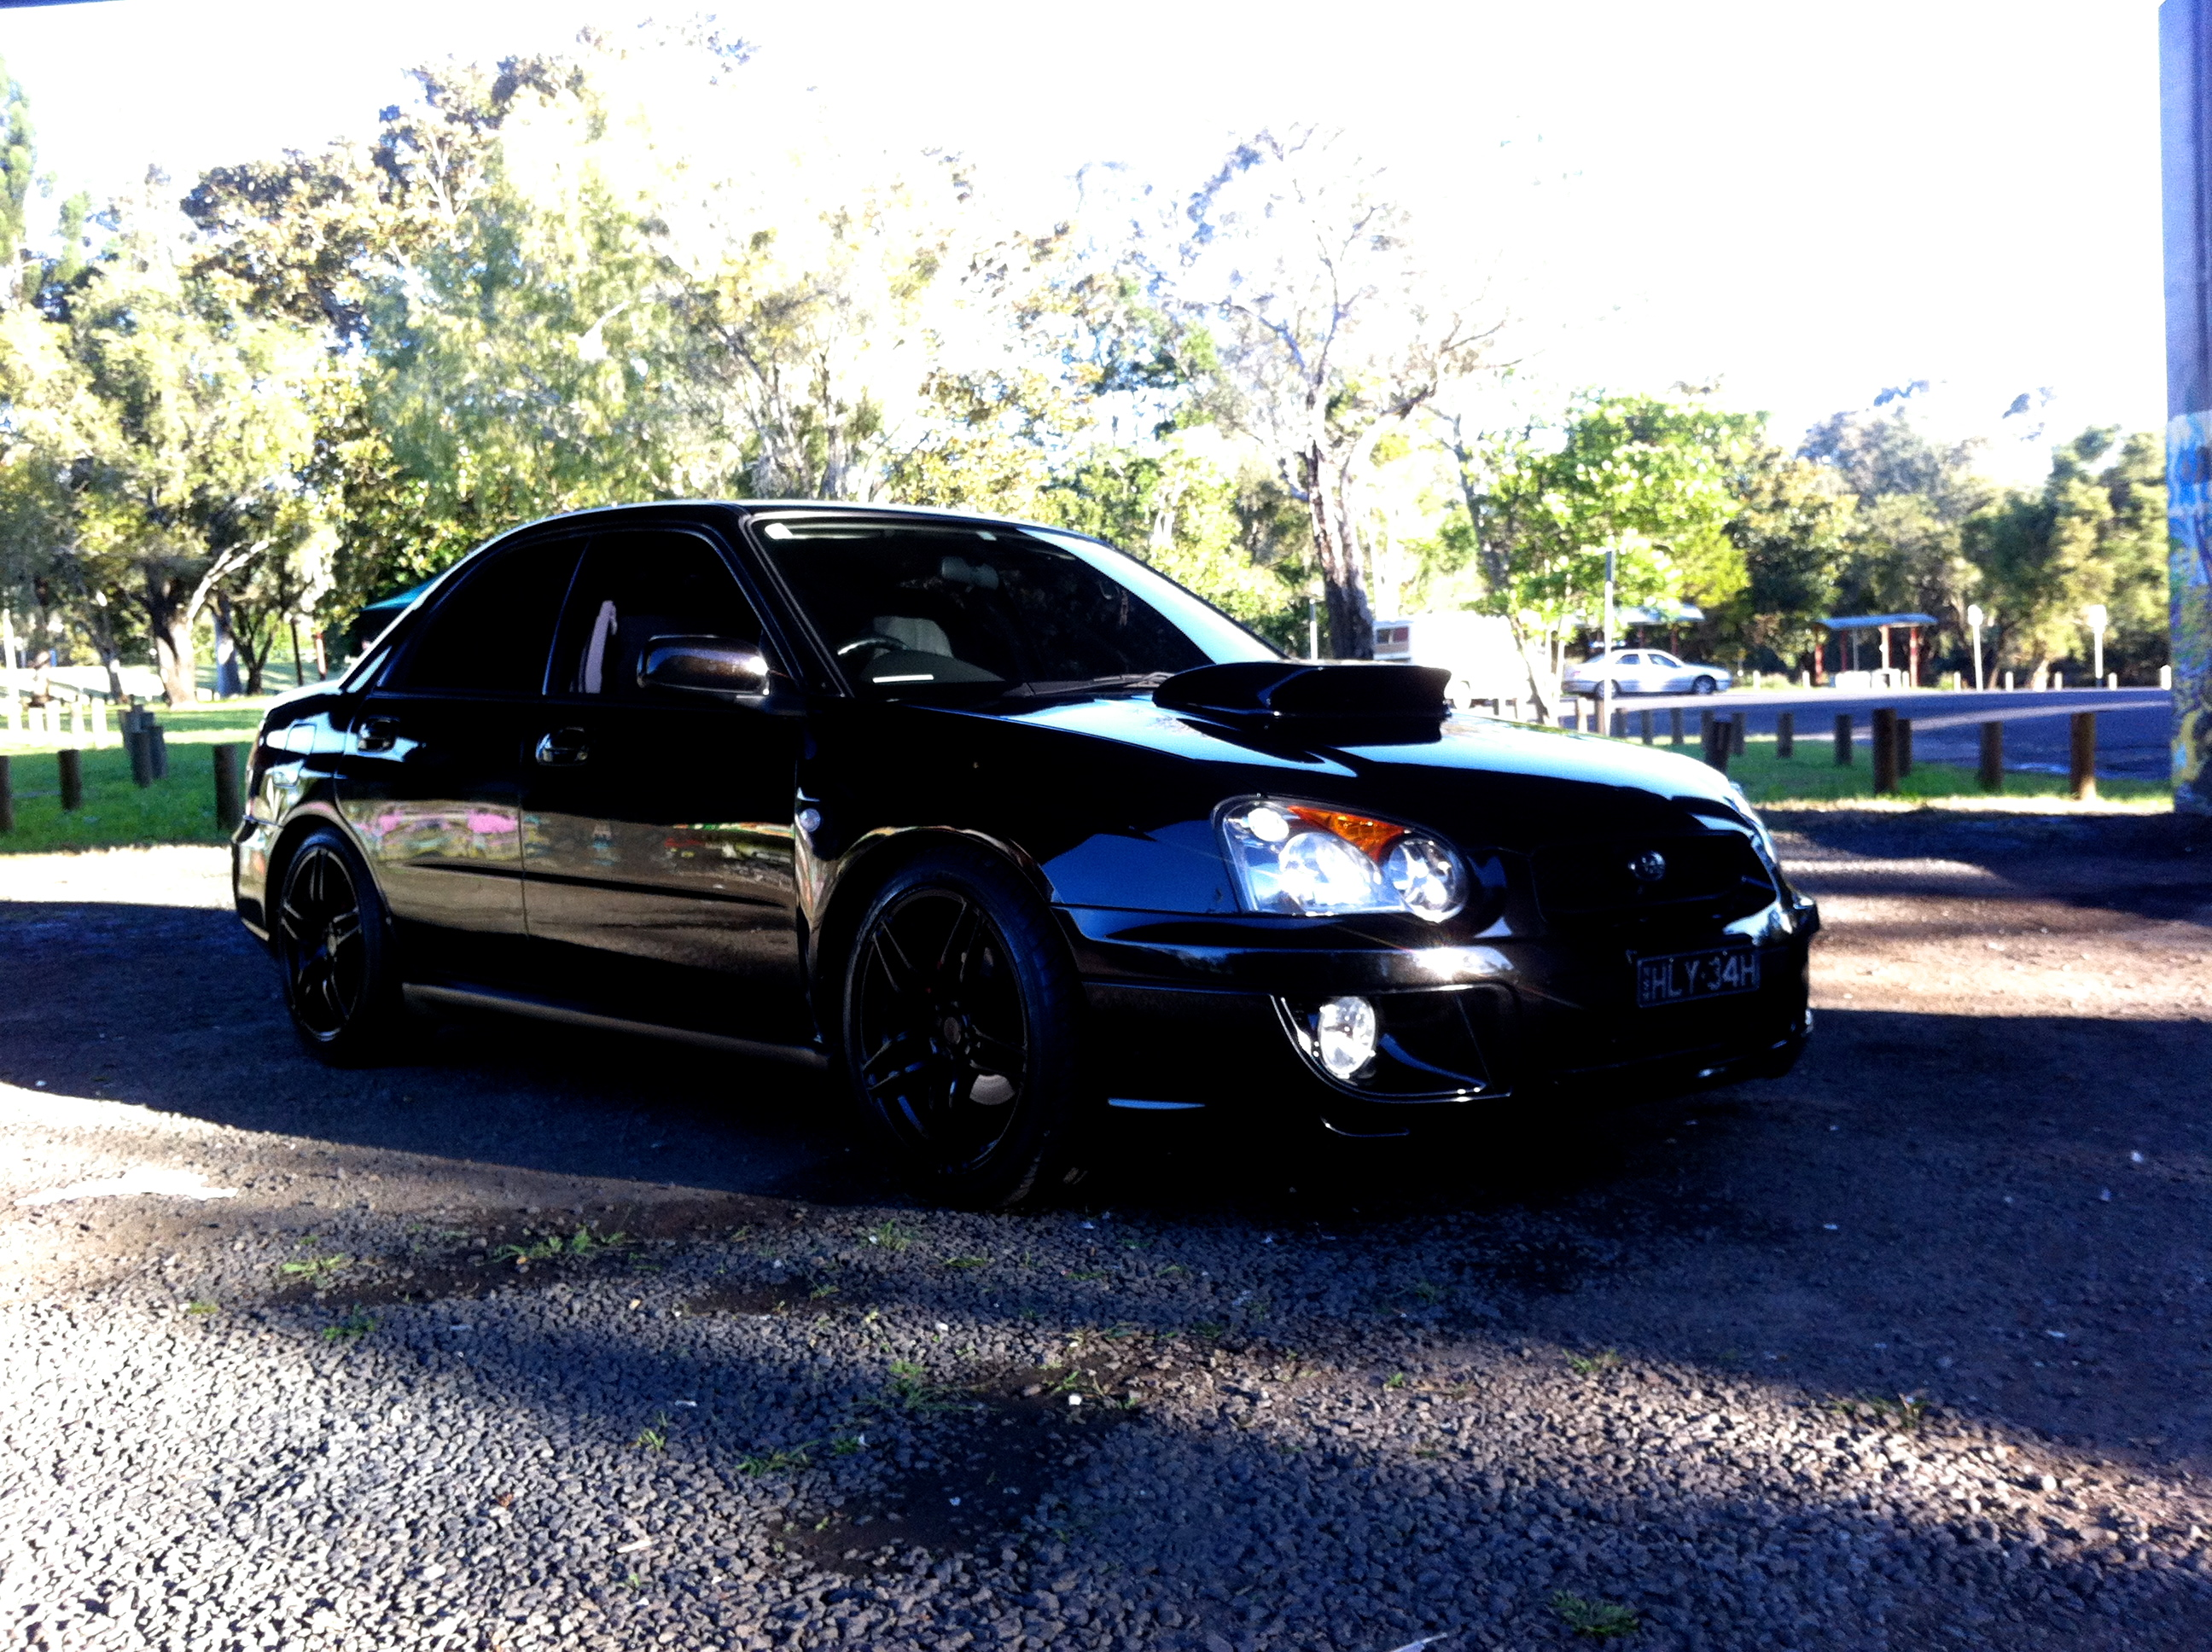 2004 subaru impreza rs awd my04 for sale nsw far north coast. Black Bedroom Furniture Sets. Home Design Ideas